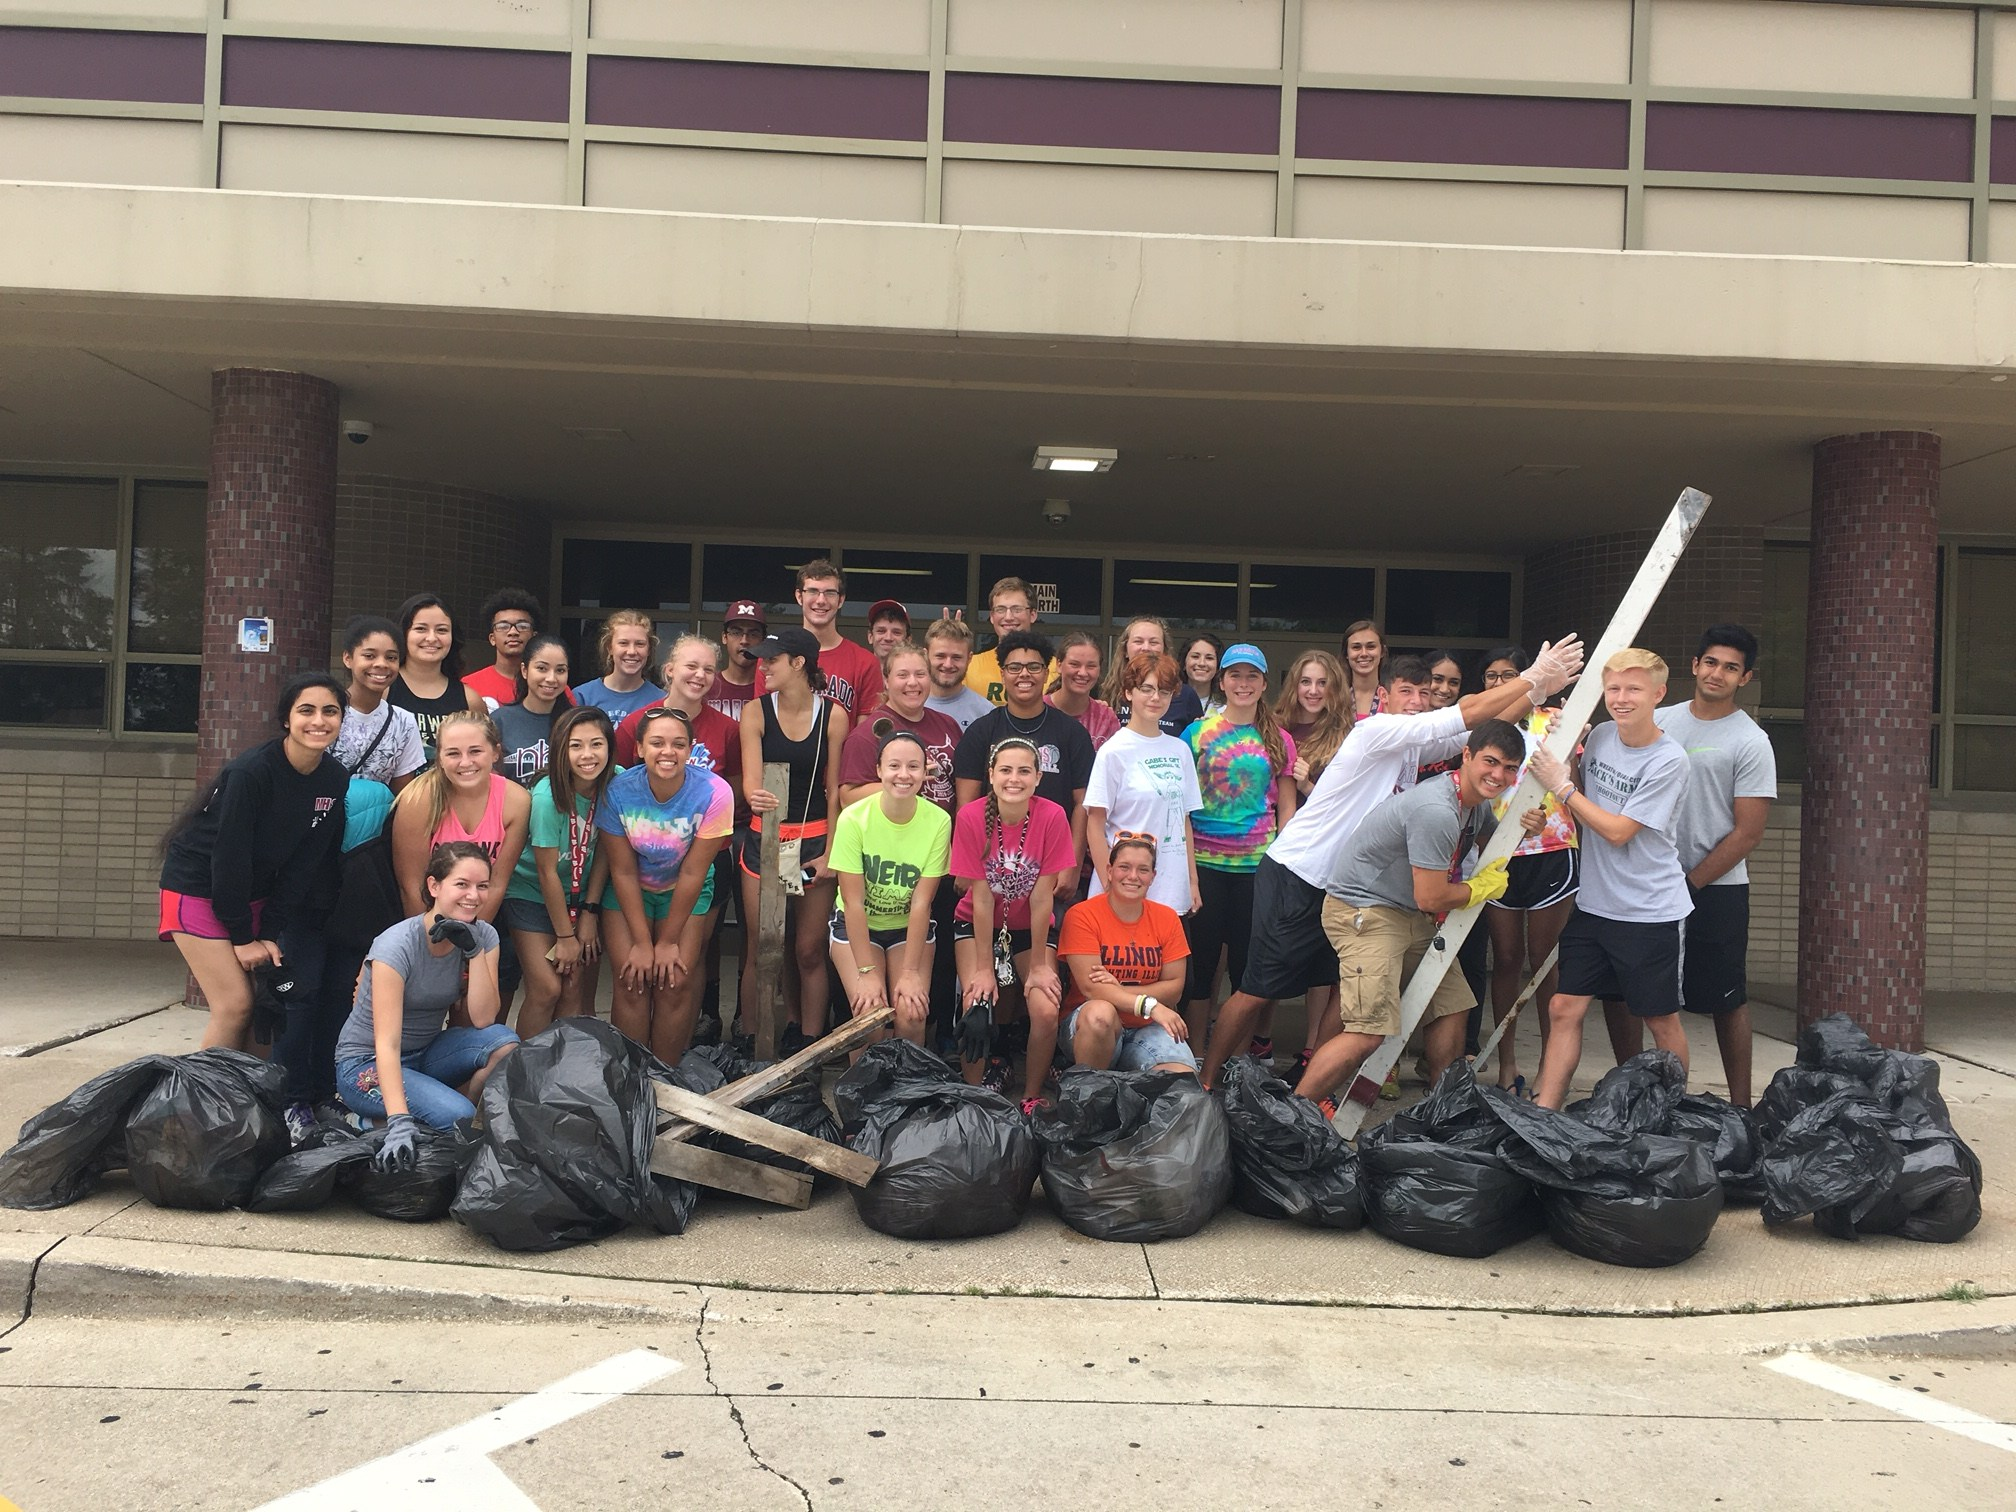 MHS Students posing after a grounds clean-up event.